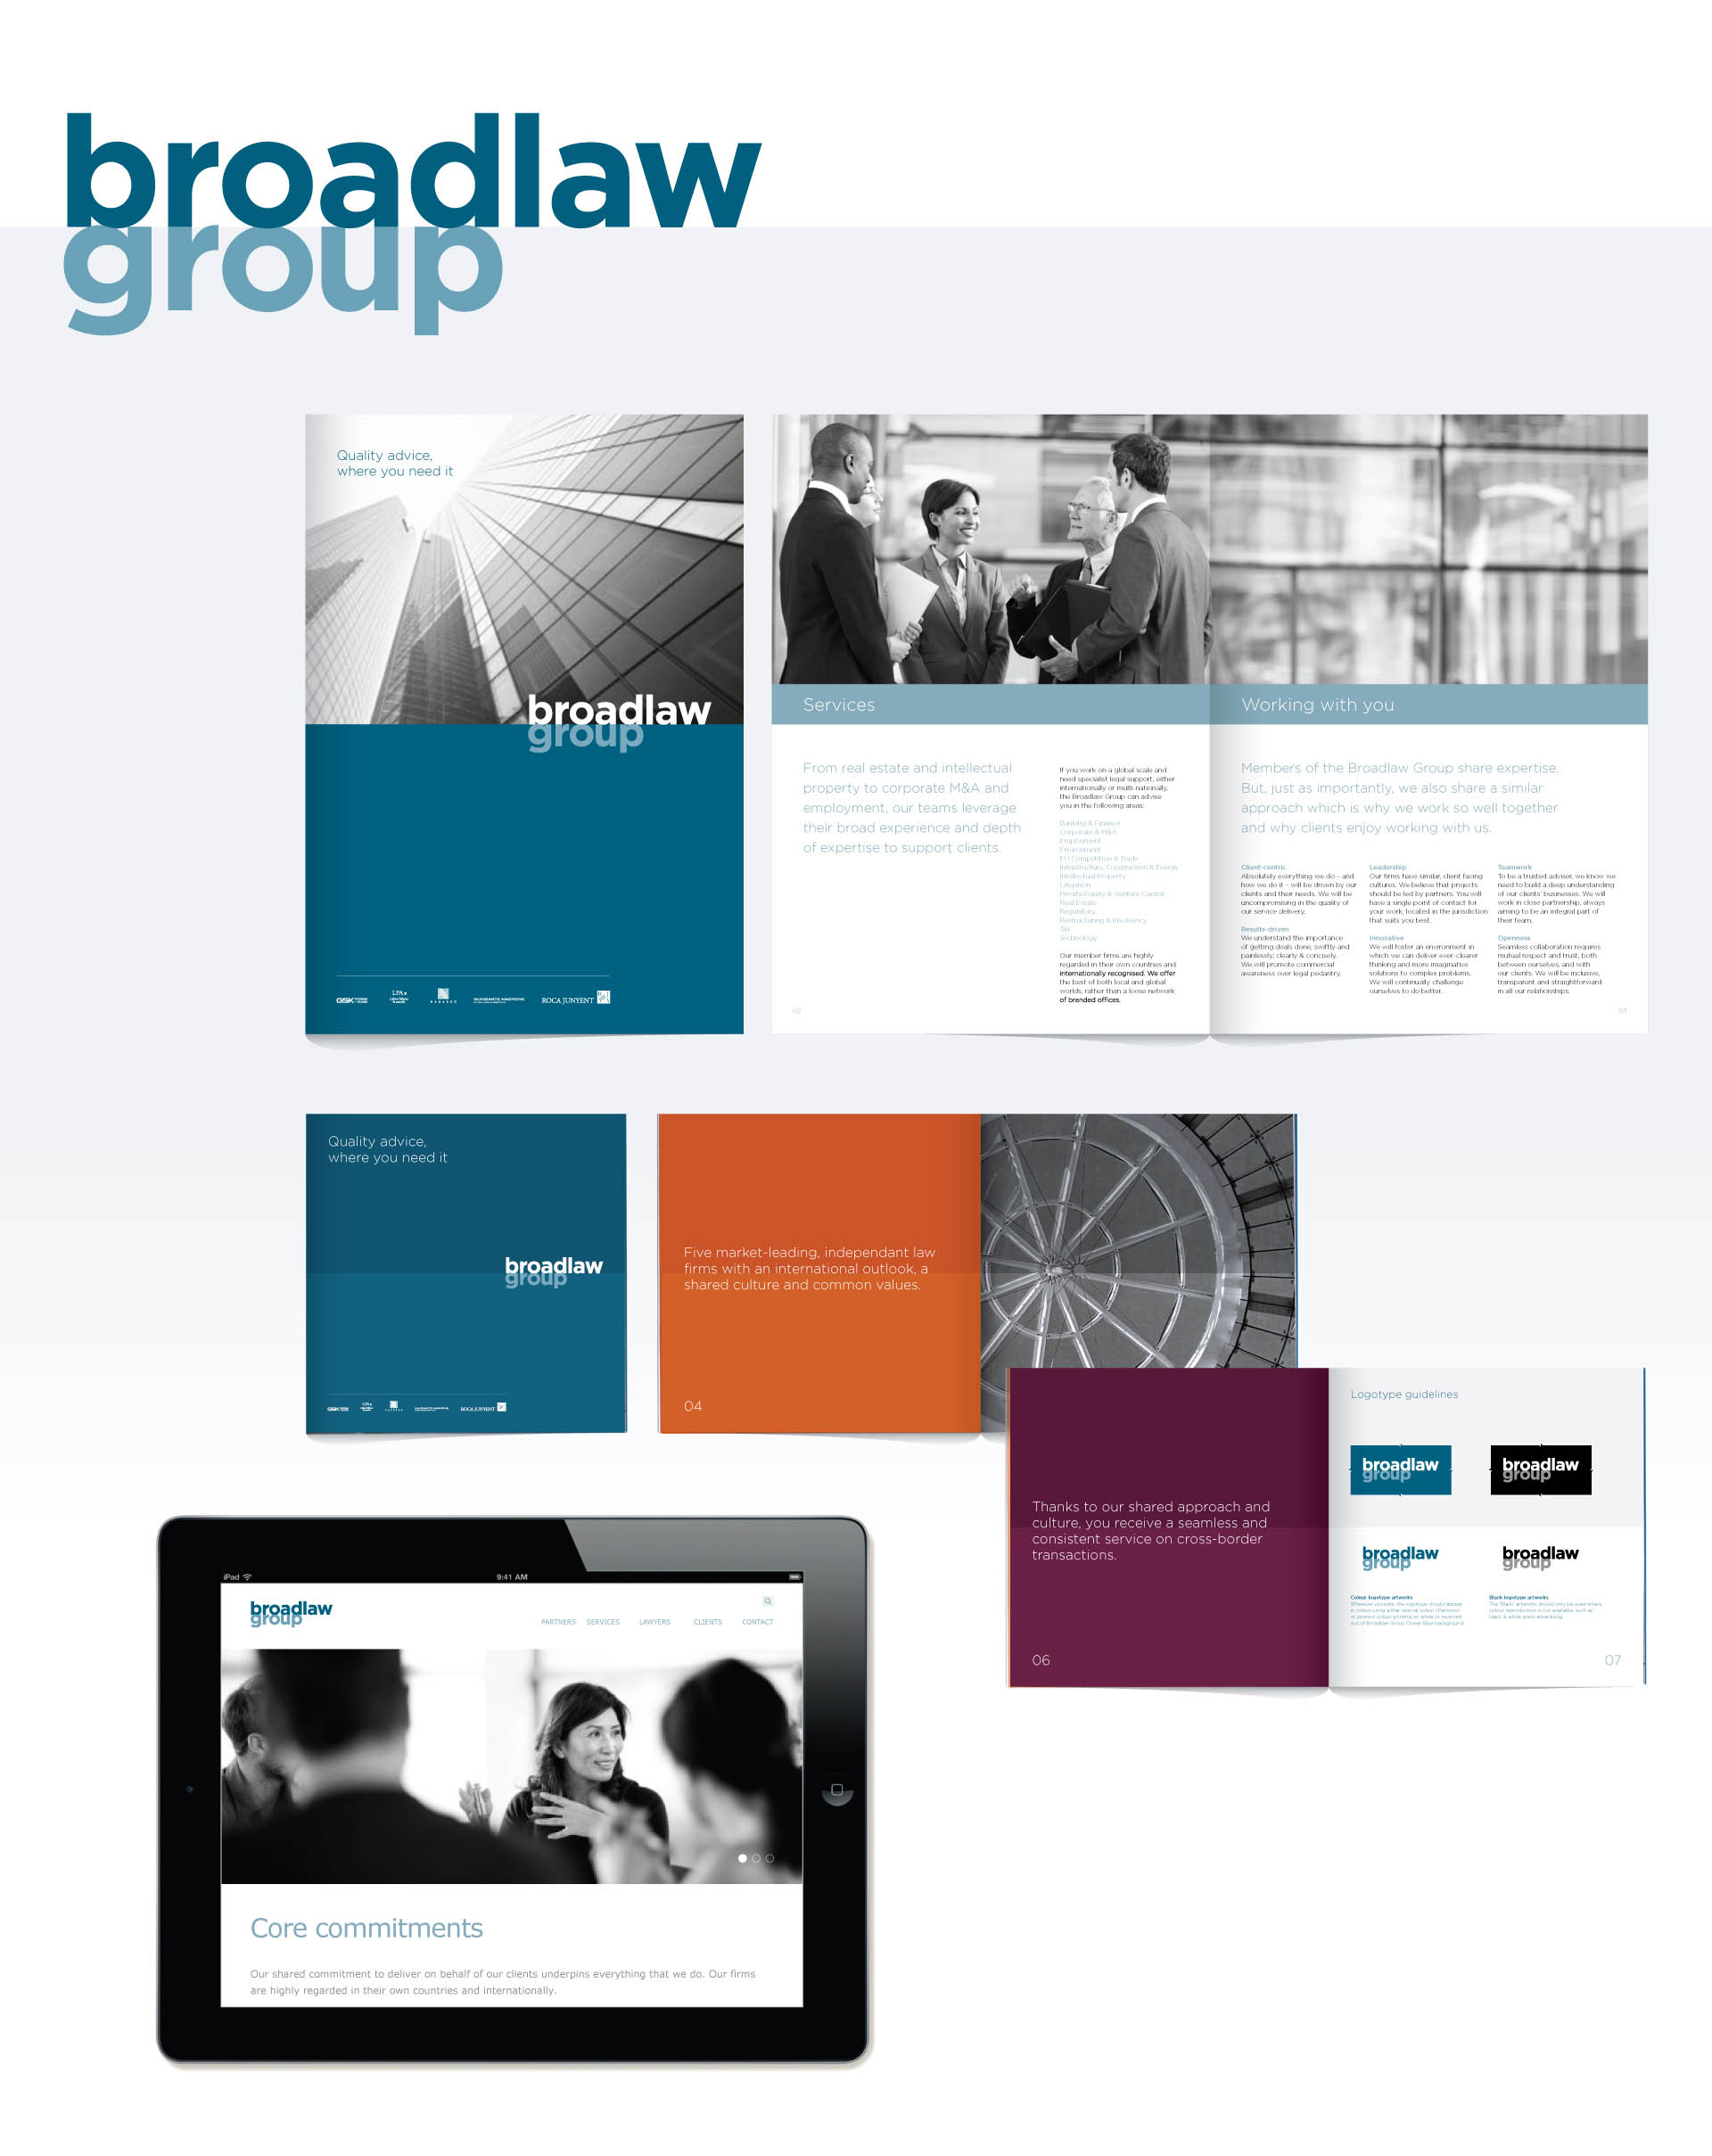 Corporate identity and visual language for Broadlaw Group – bringing together five market-leading independant law firms in 31 offices across Asia, Europe, the Middle East and North Africa